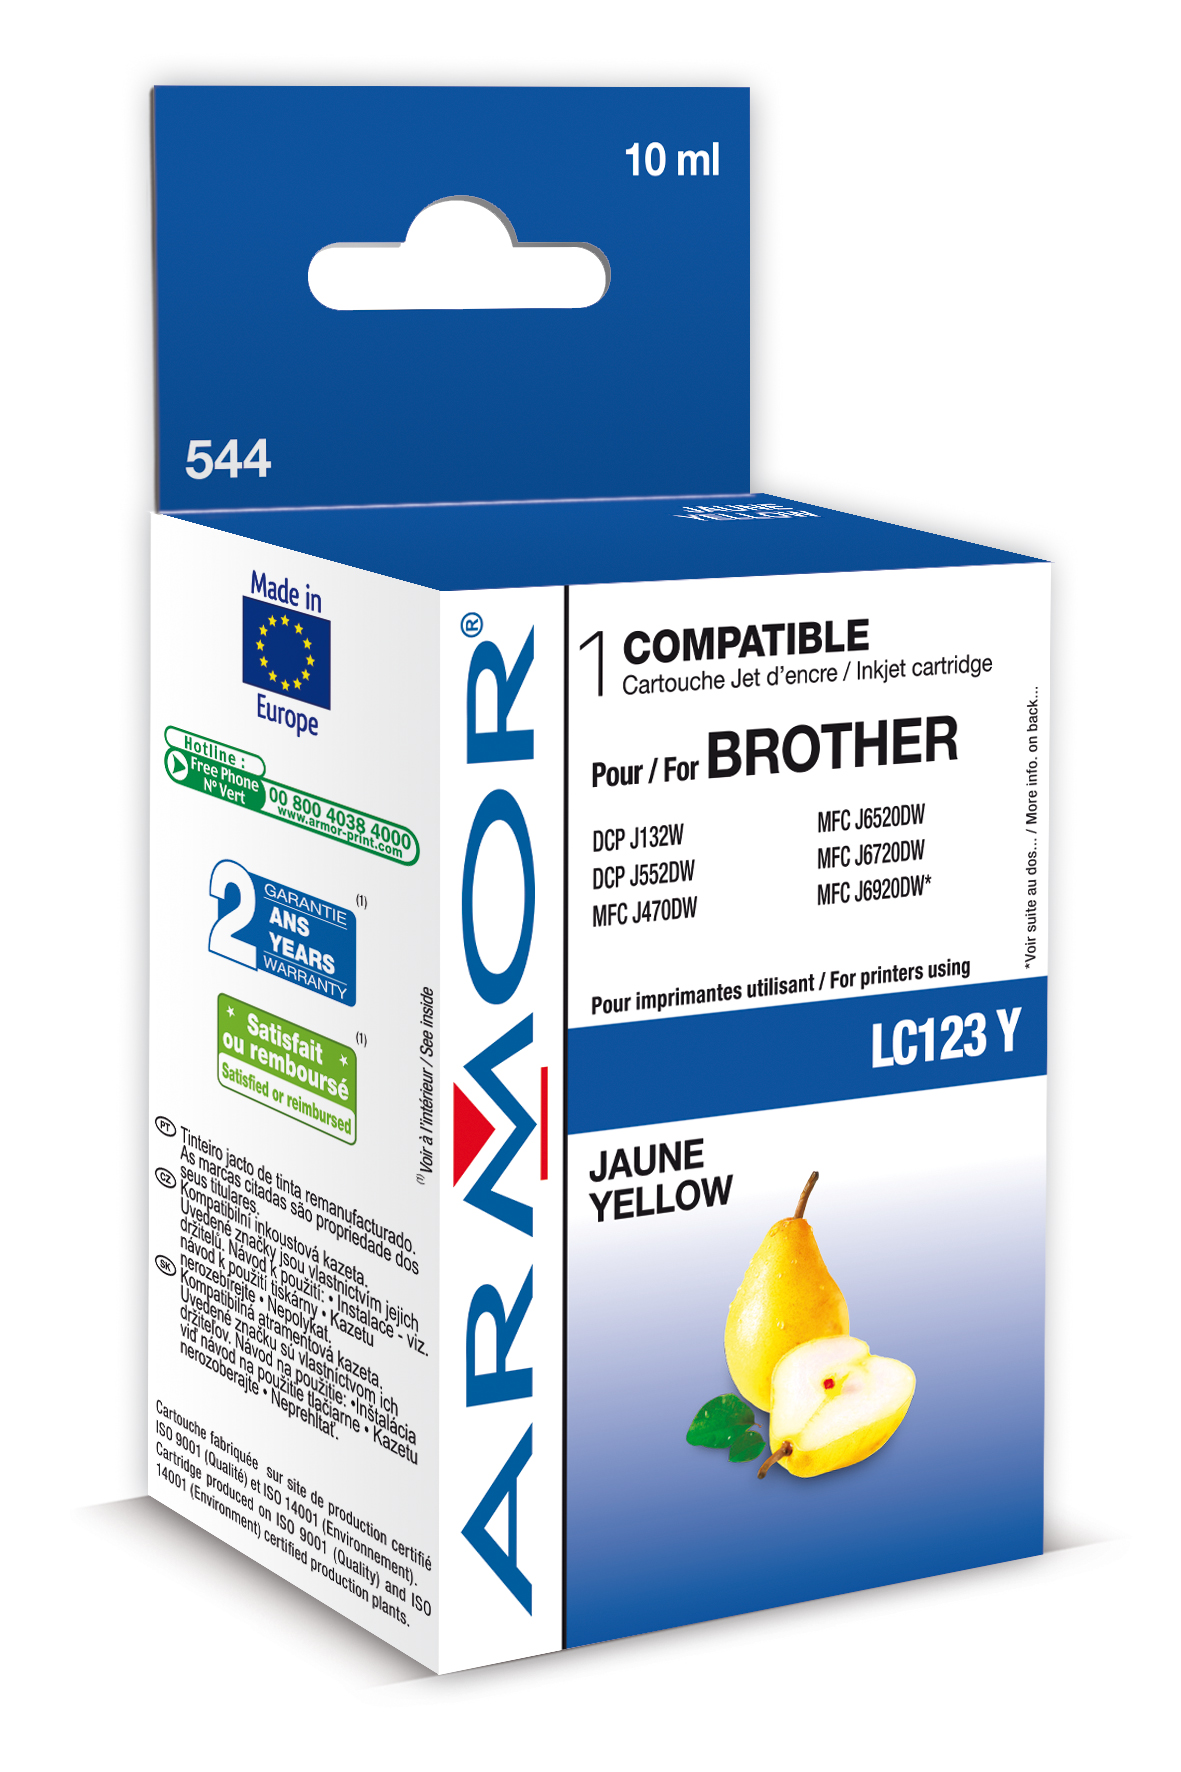 Armor ink-jet Brother MFC-J4510 (LC123Y) 10ml